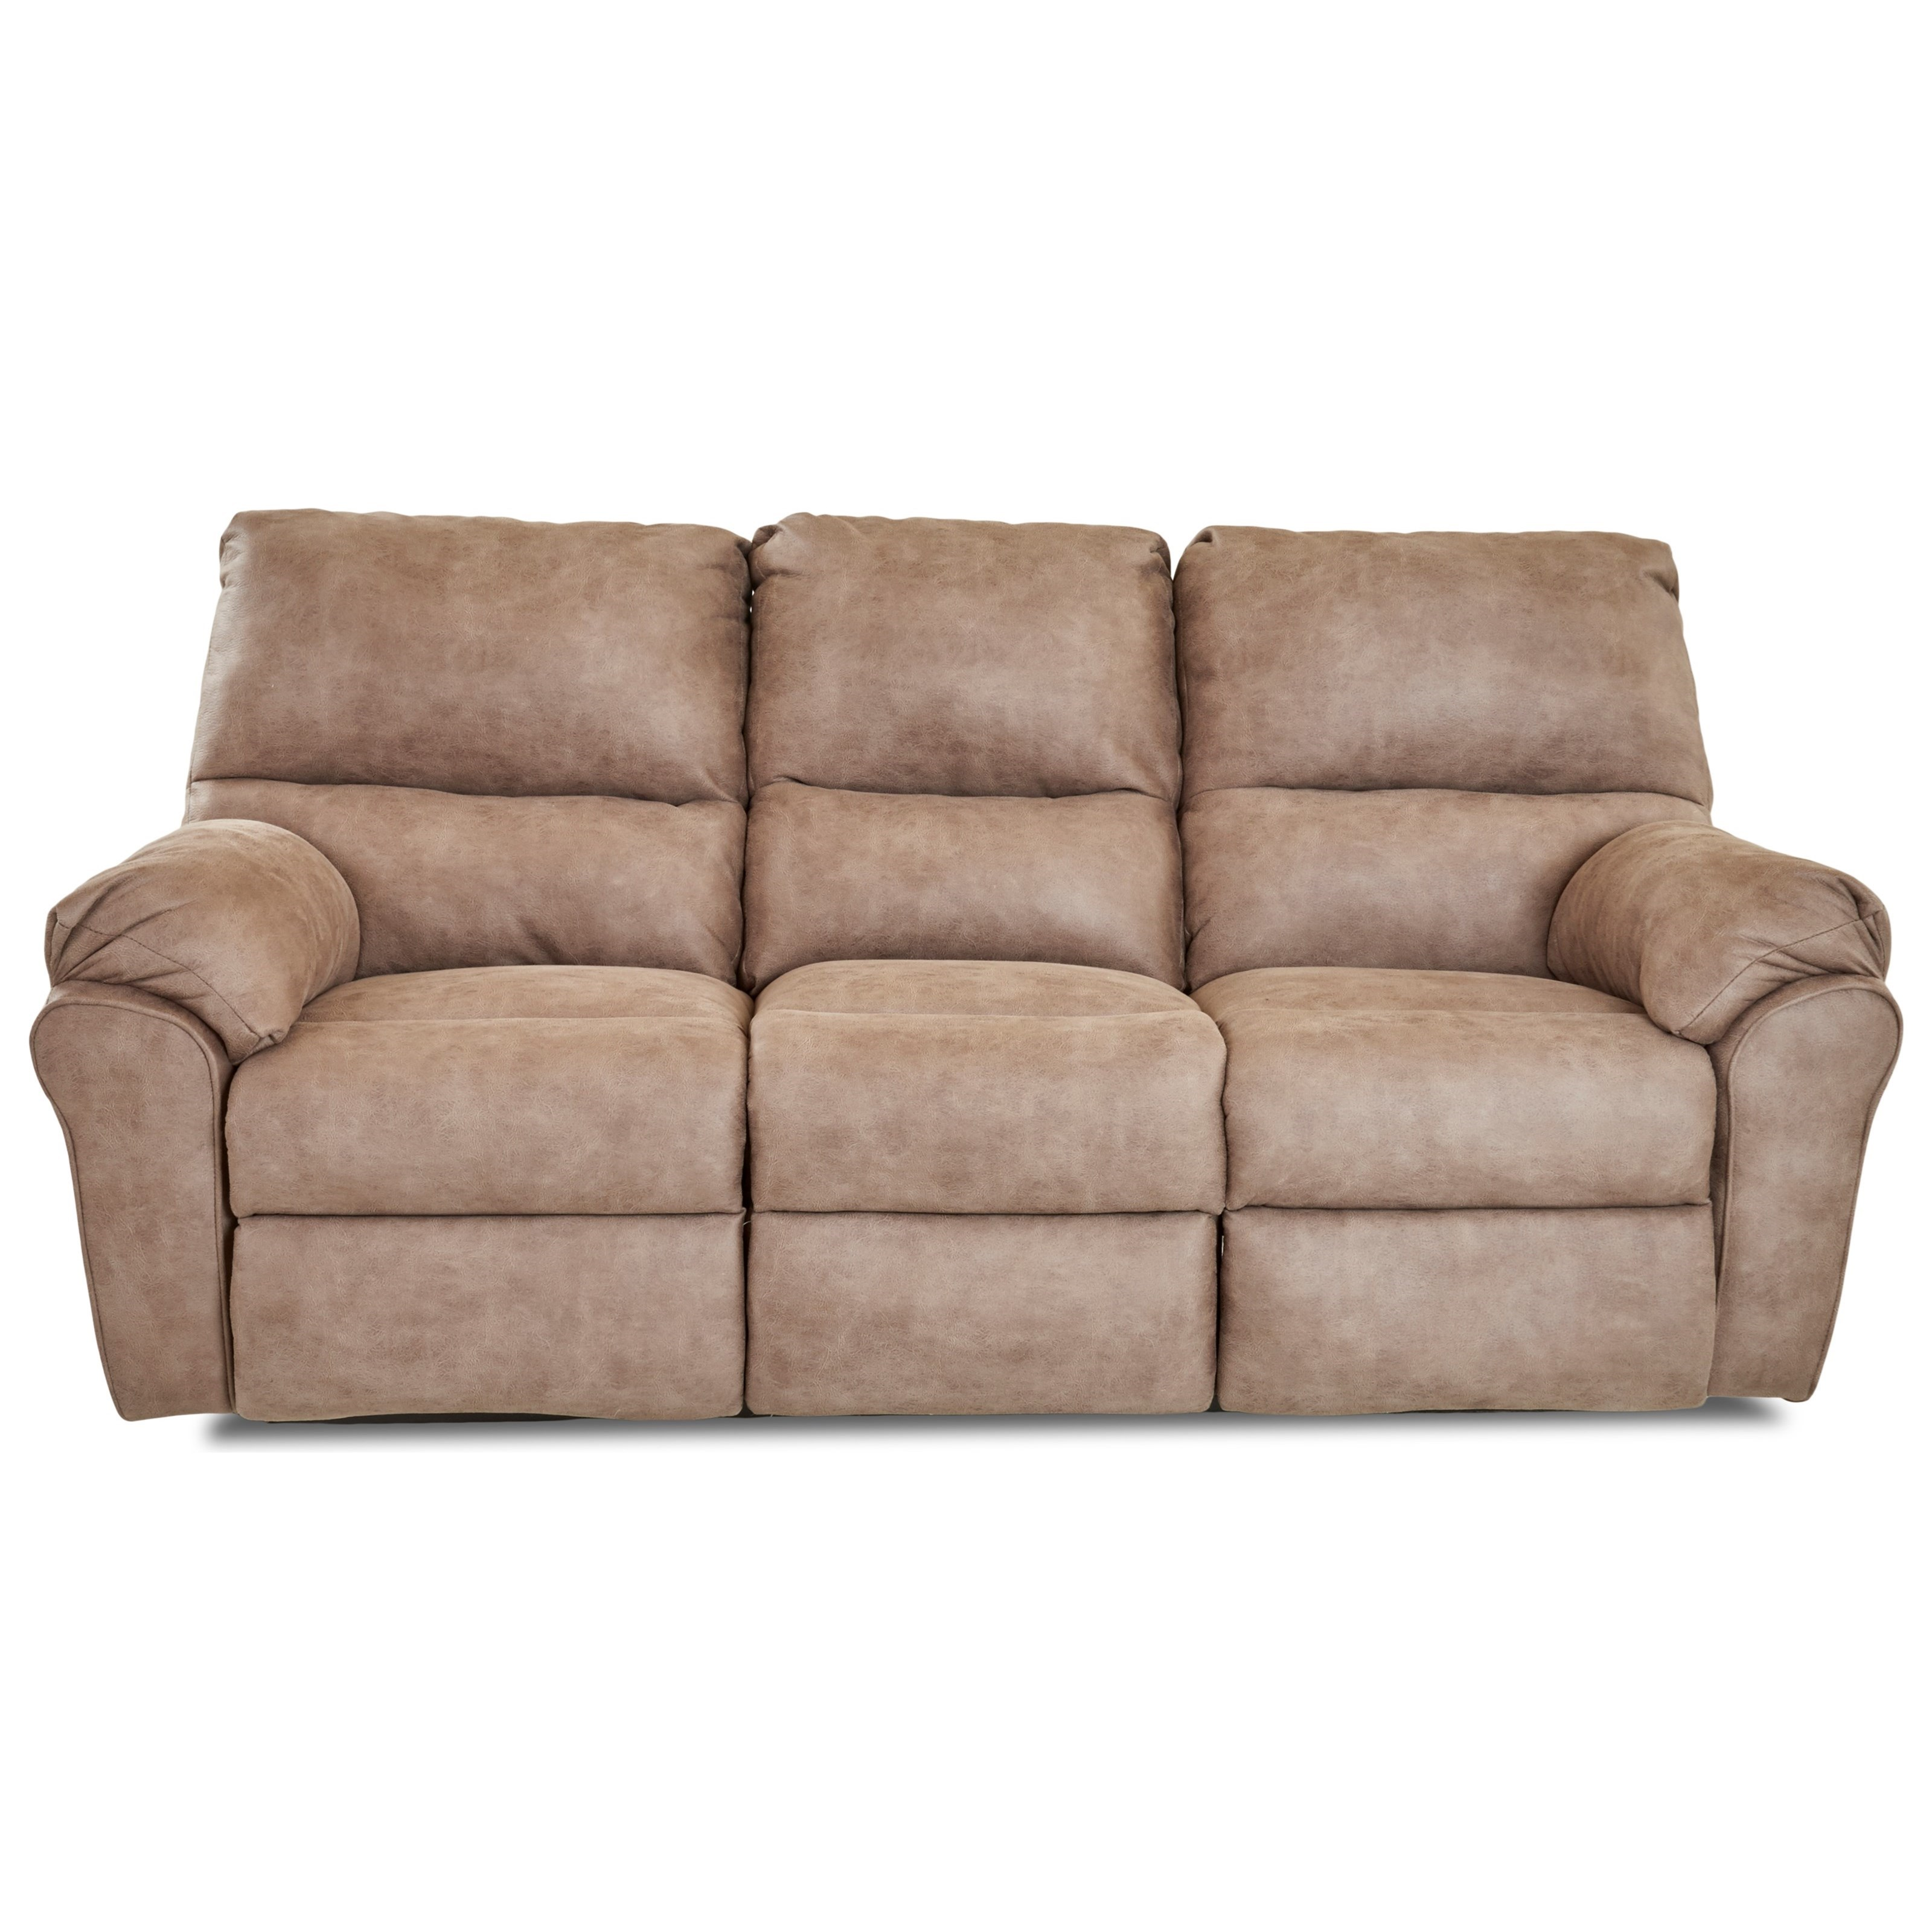 PW3RS Ends w/Pwr, Ctr-Manual Sofa